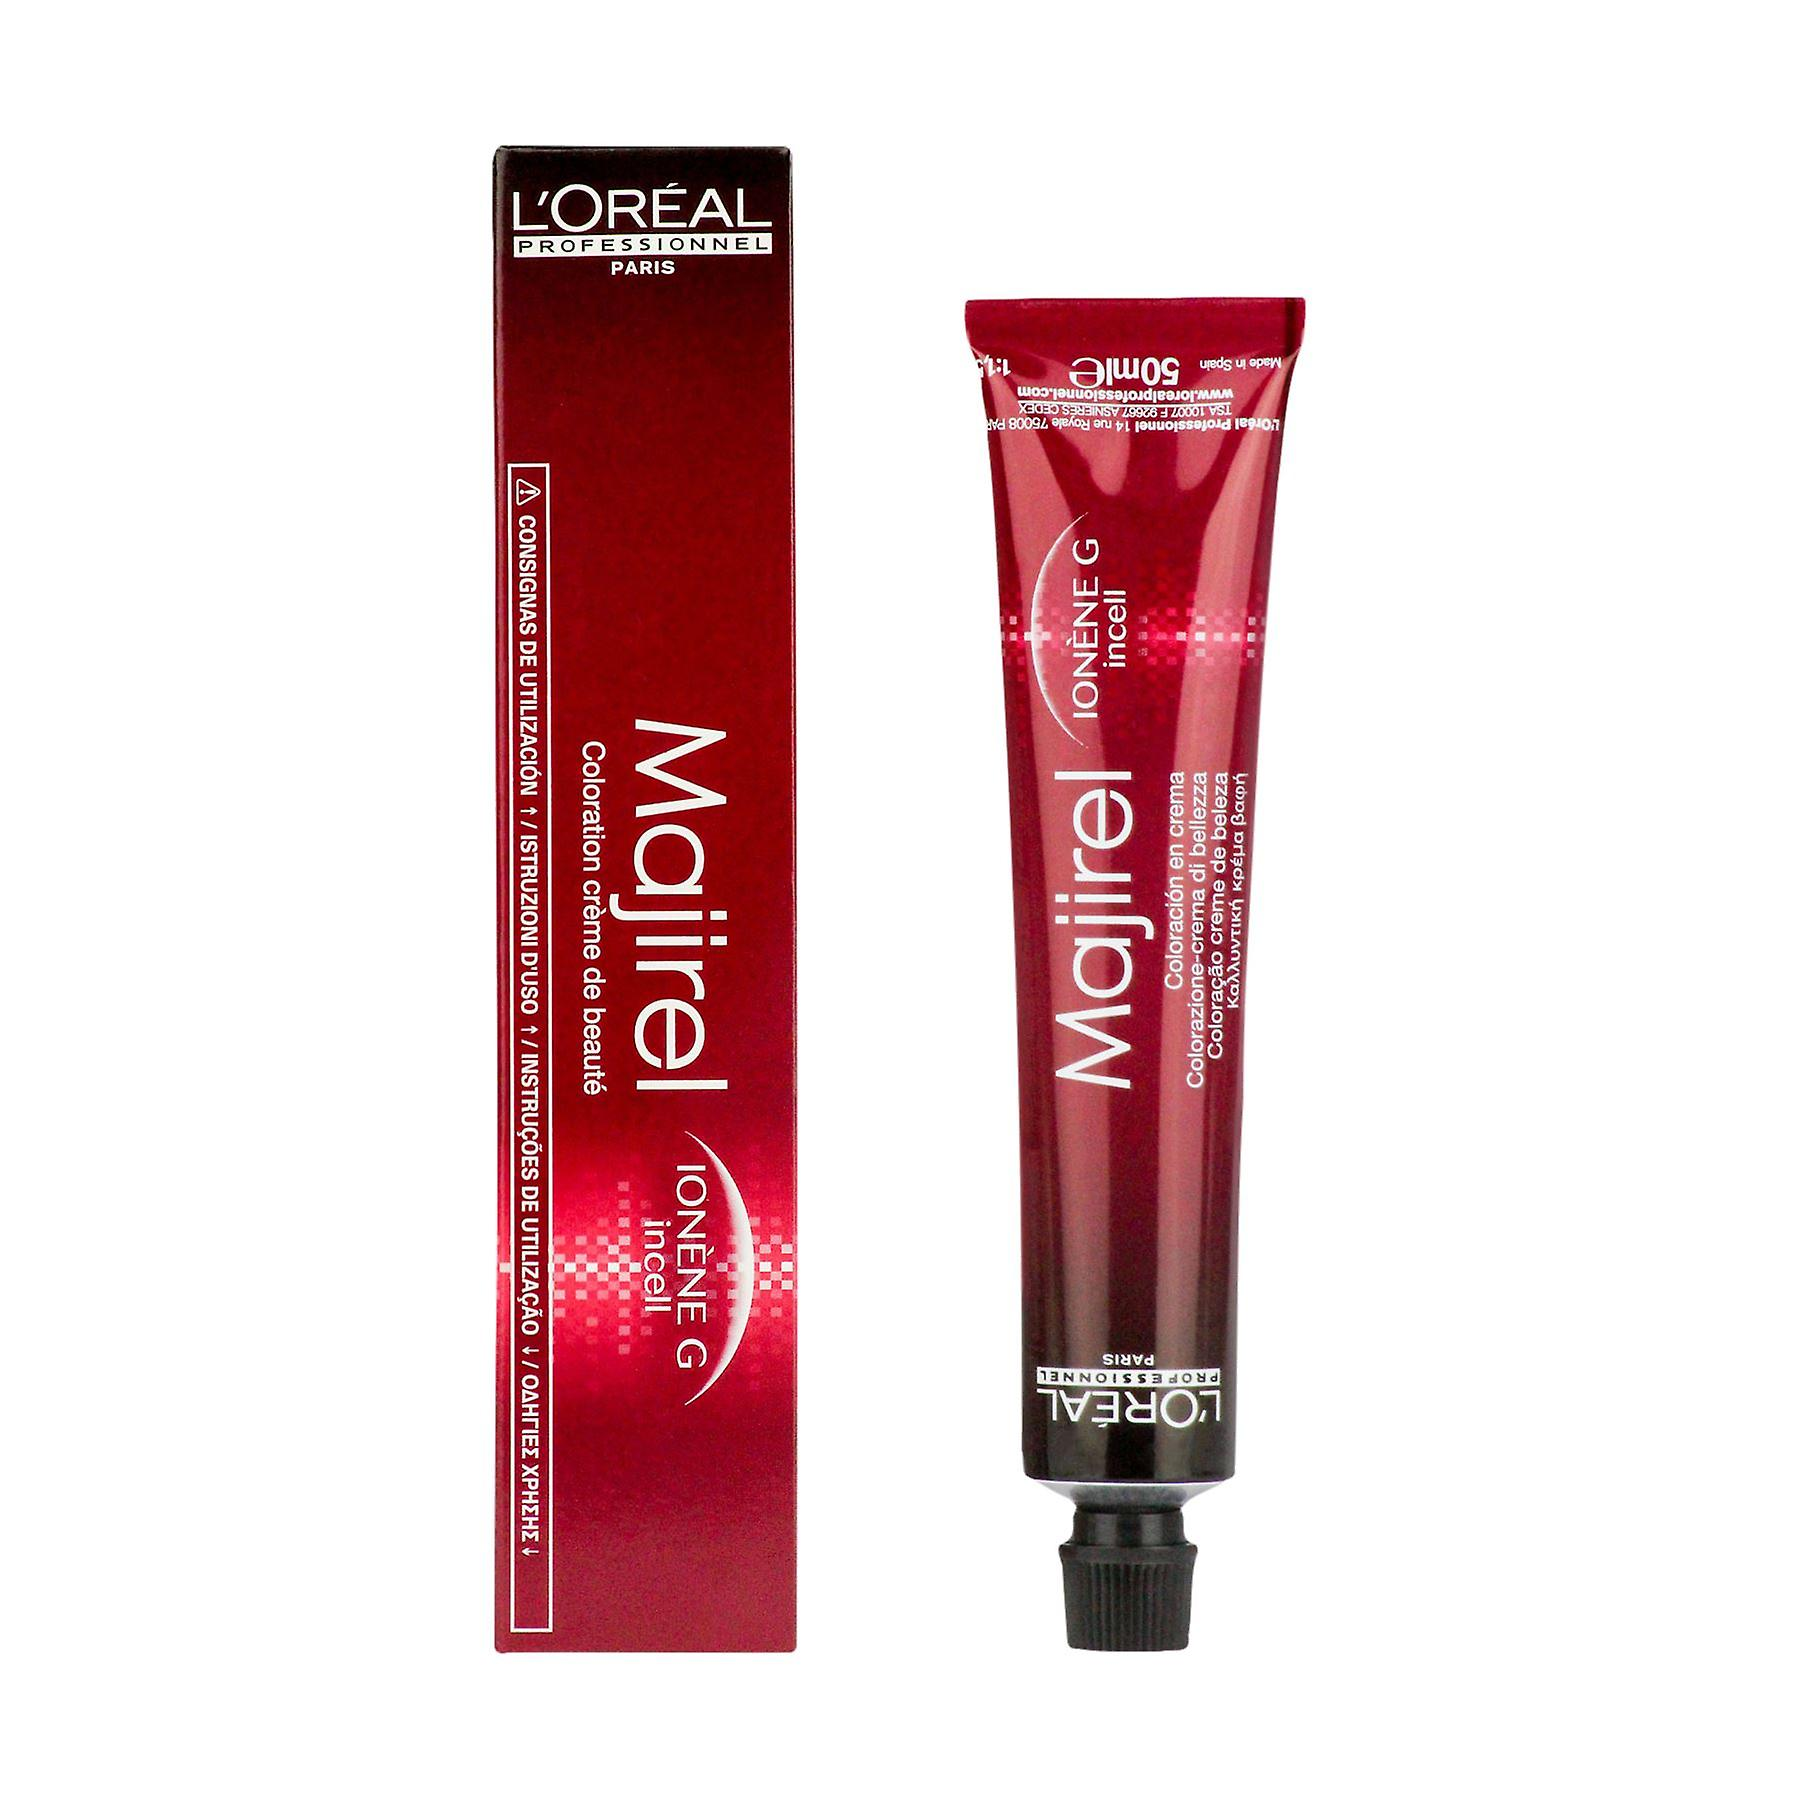 L'Oreal Professionnel Majirel 9, 31 Very Light Golden Ash Blonde 50ml